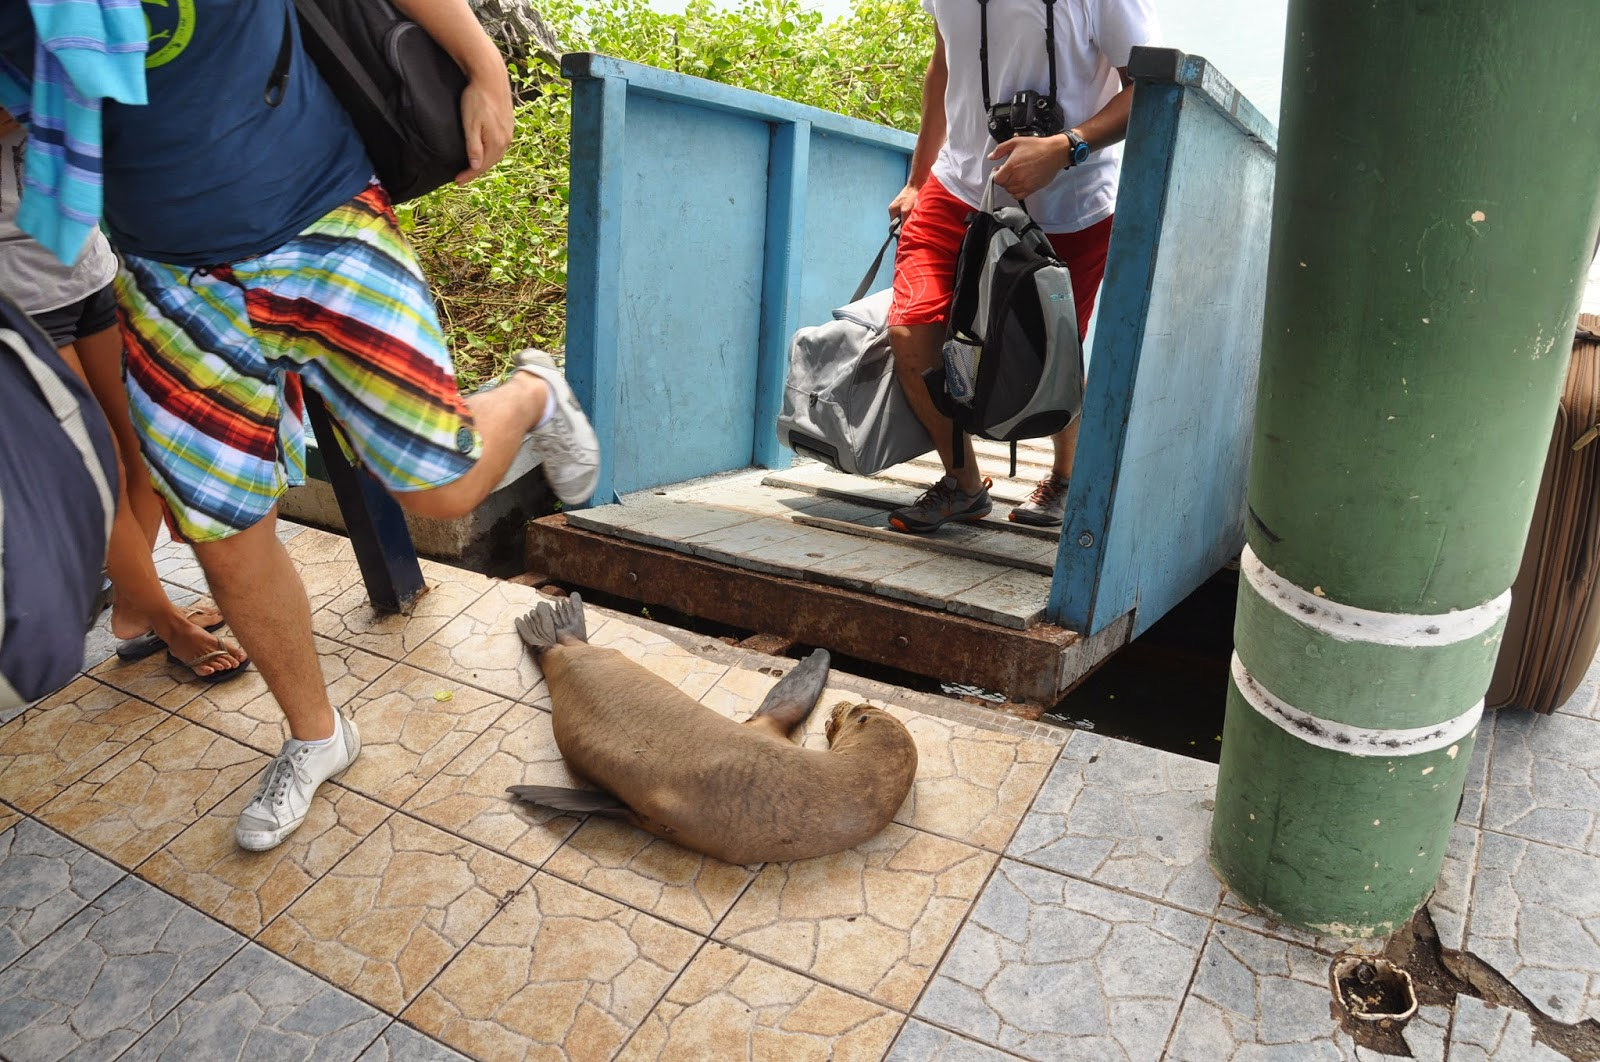 After getting off the ferry from the airport, we had to step over a sleeping little sea lion. Welcome to the Galapagos!